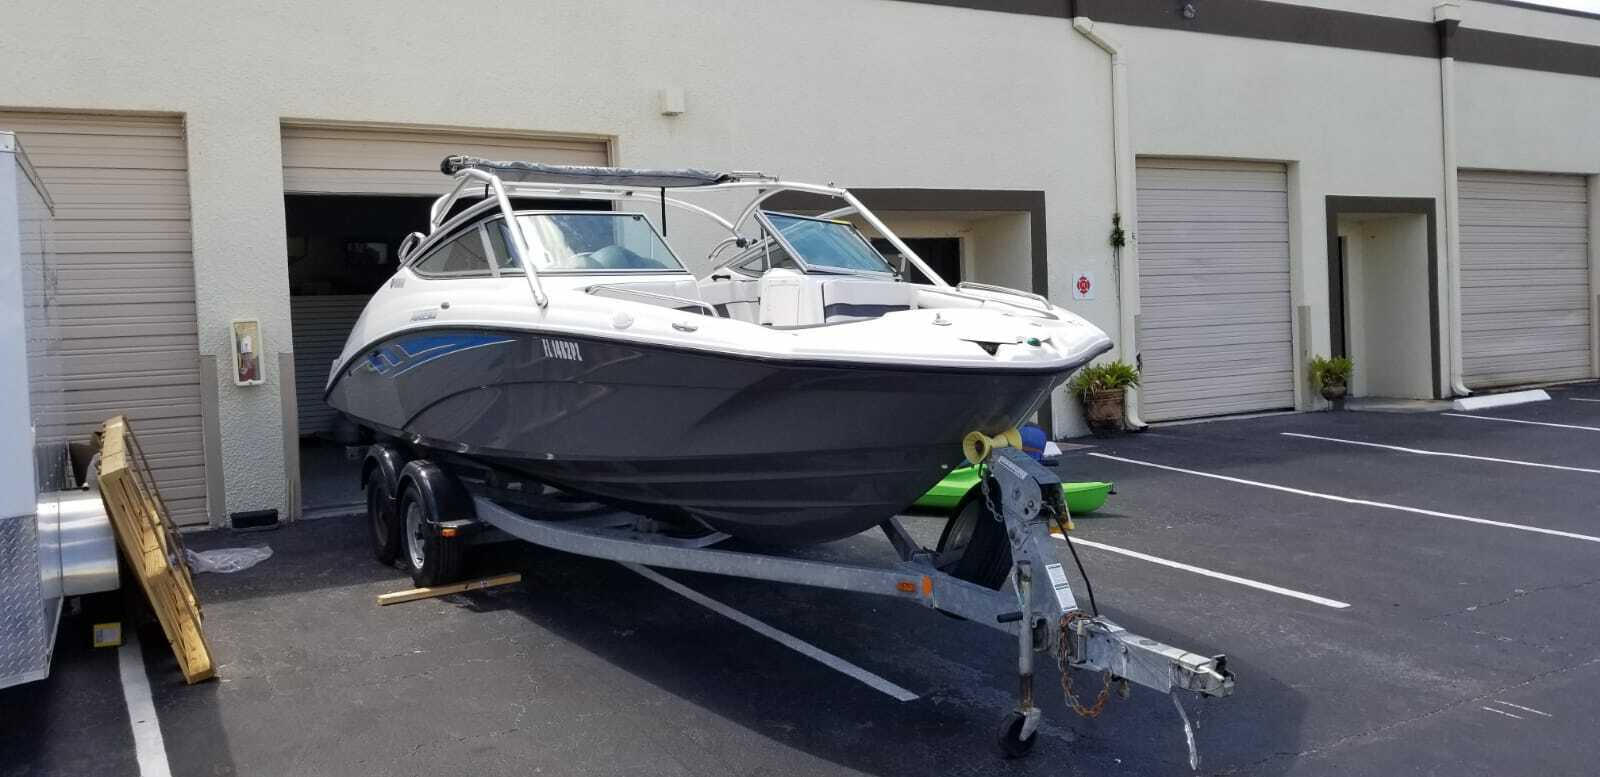 2015 Yamaha AR210 Powerboat Dual Jet Pristine Condition Wakeboard Tower Warranty